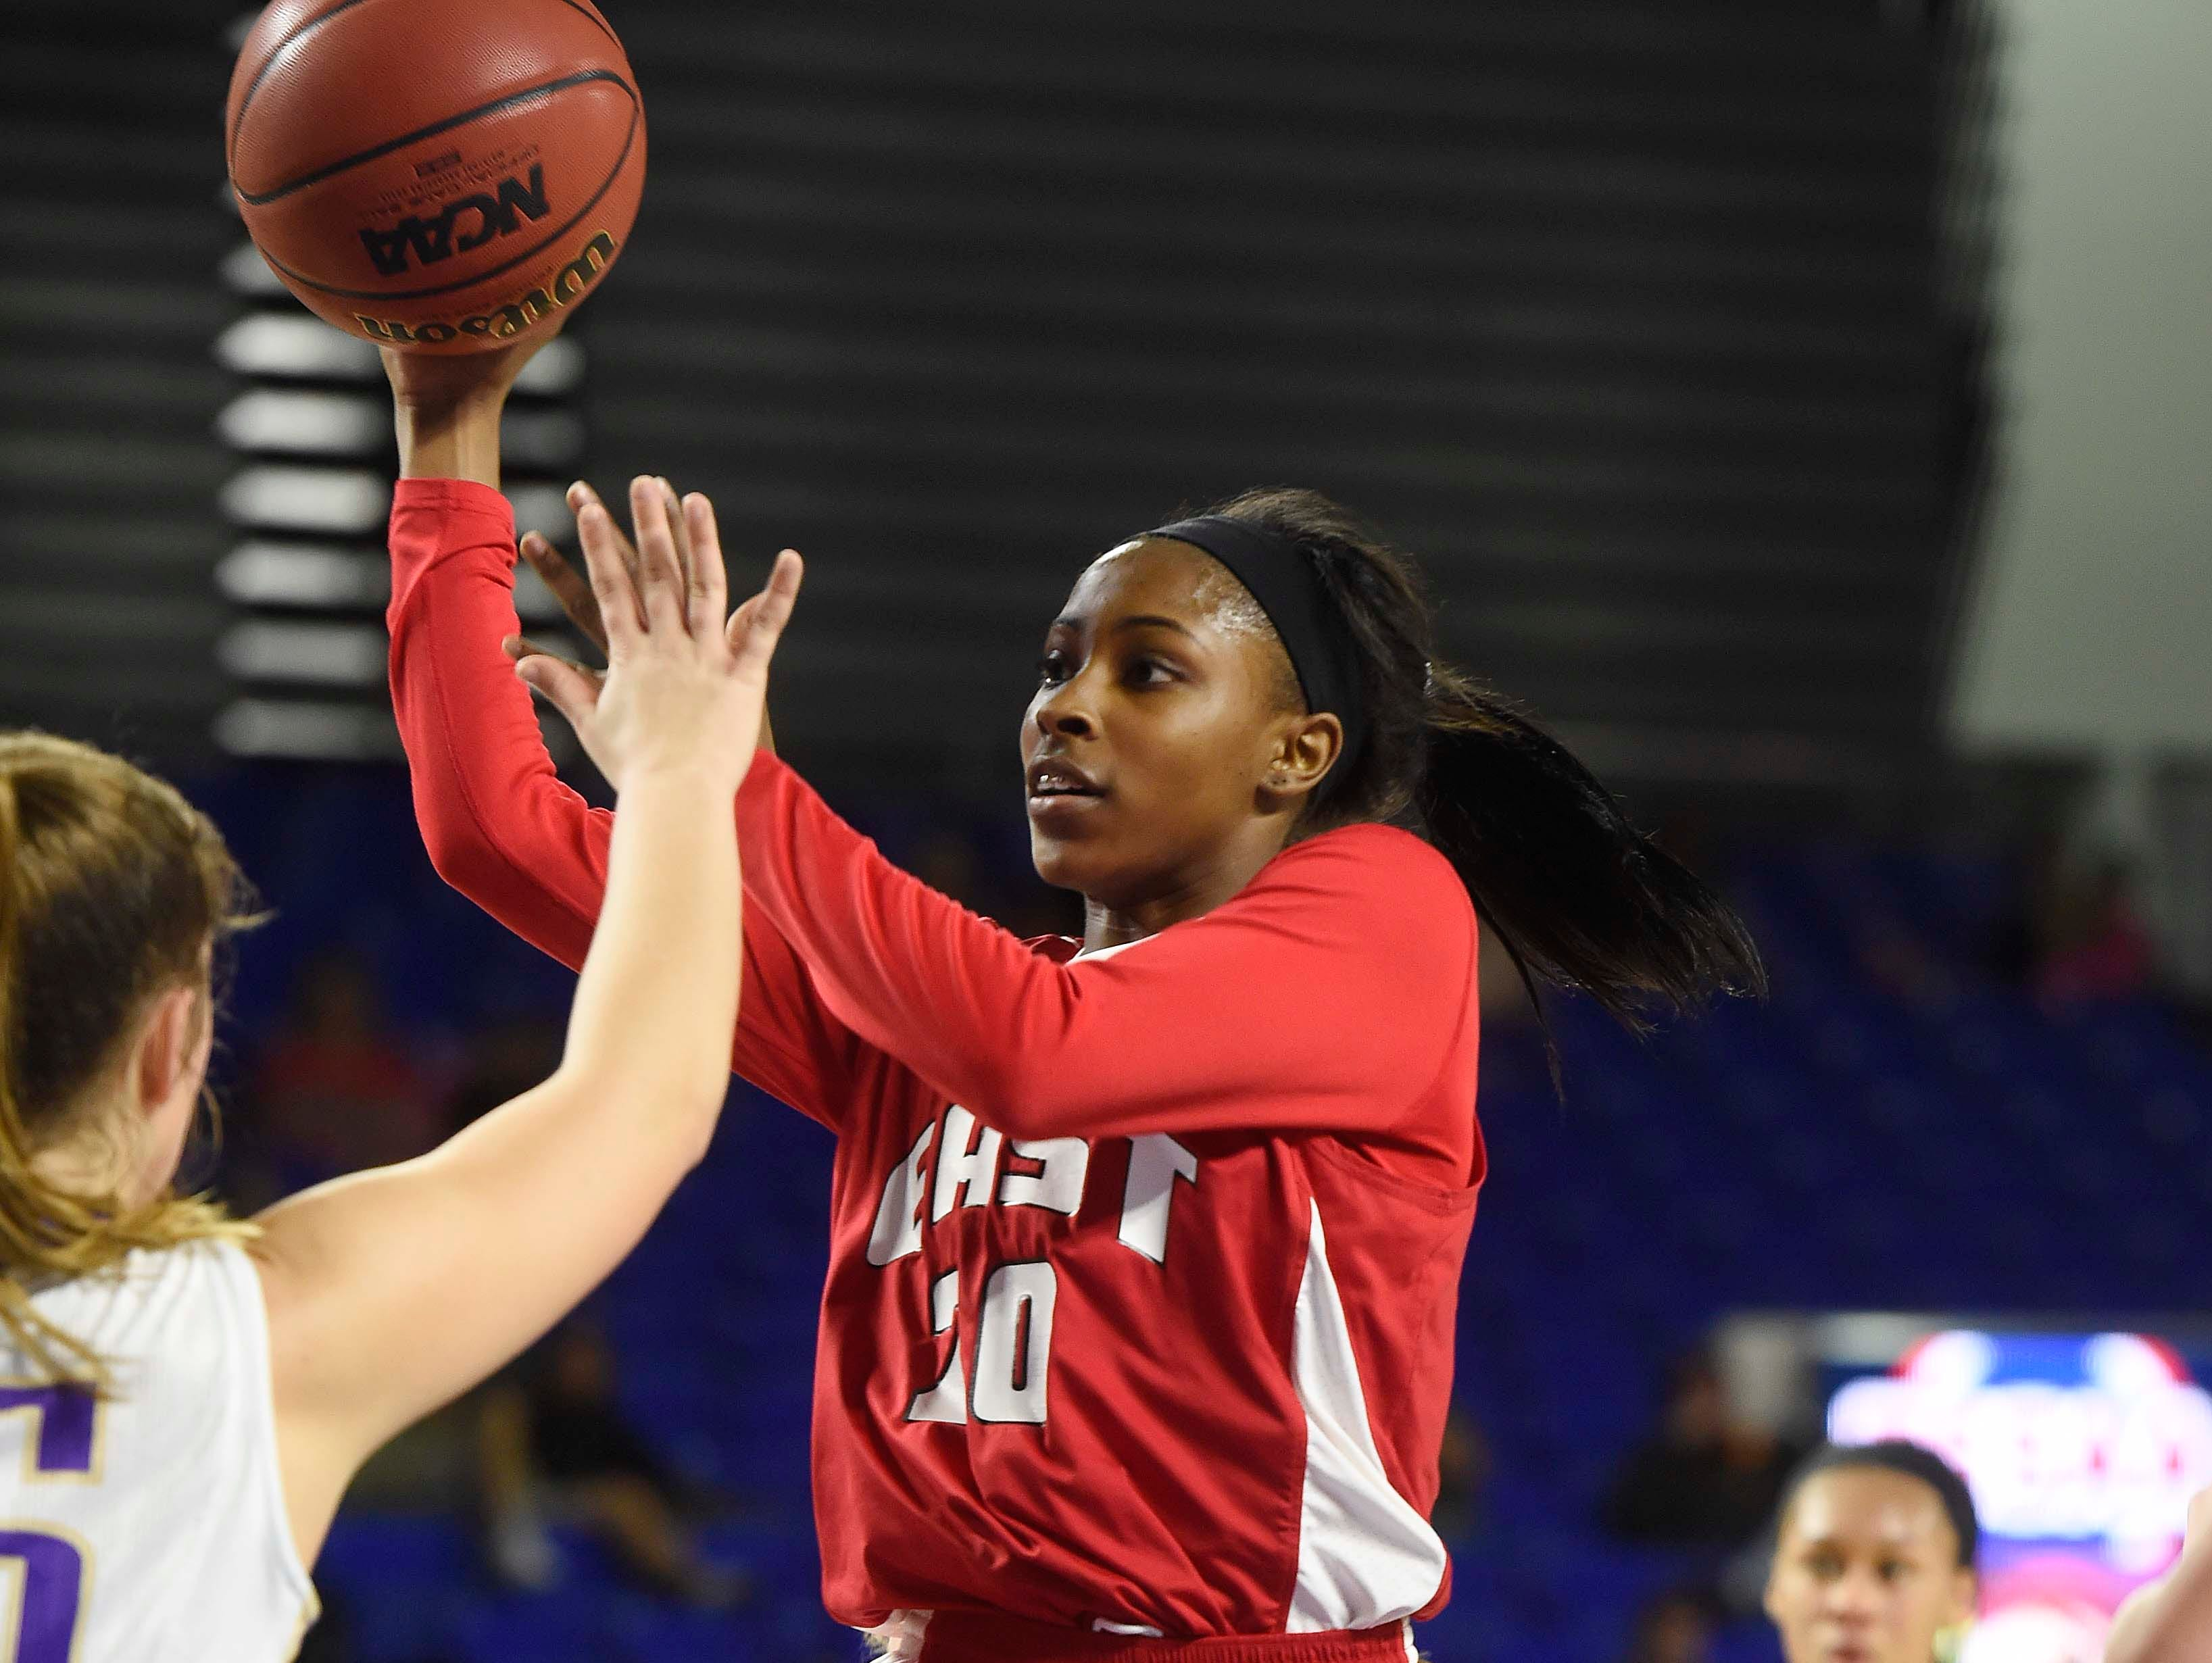 East's Erica Haynes-Overton (20) shoots for two as East Nashville leads 25-24 at the half n the Division I Class AA Girl's basketball tournament at the Murphy Center on MTSU's campus March 10, 2016 in Murfreesboro, Tenn.